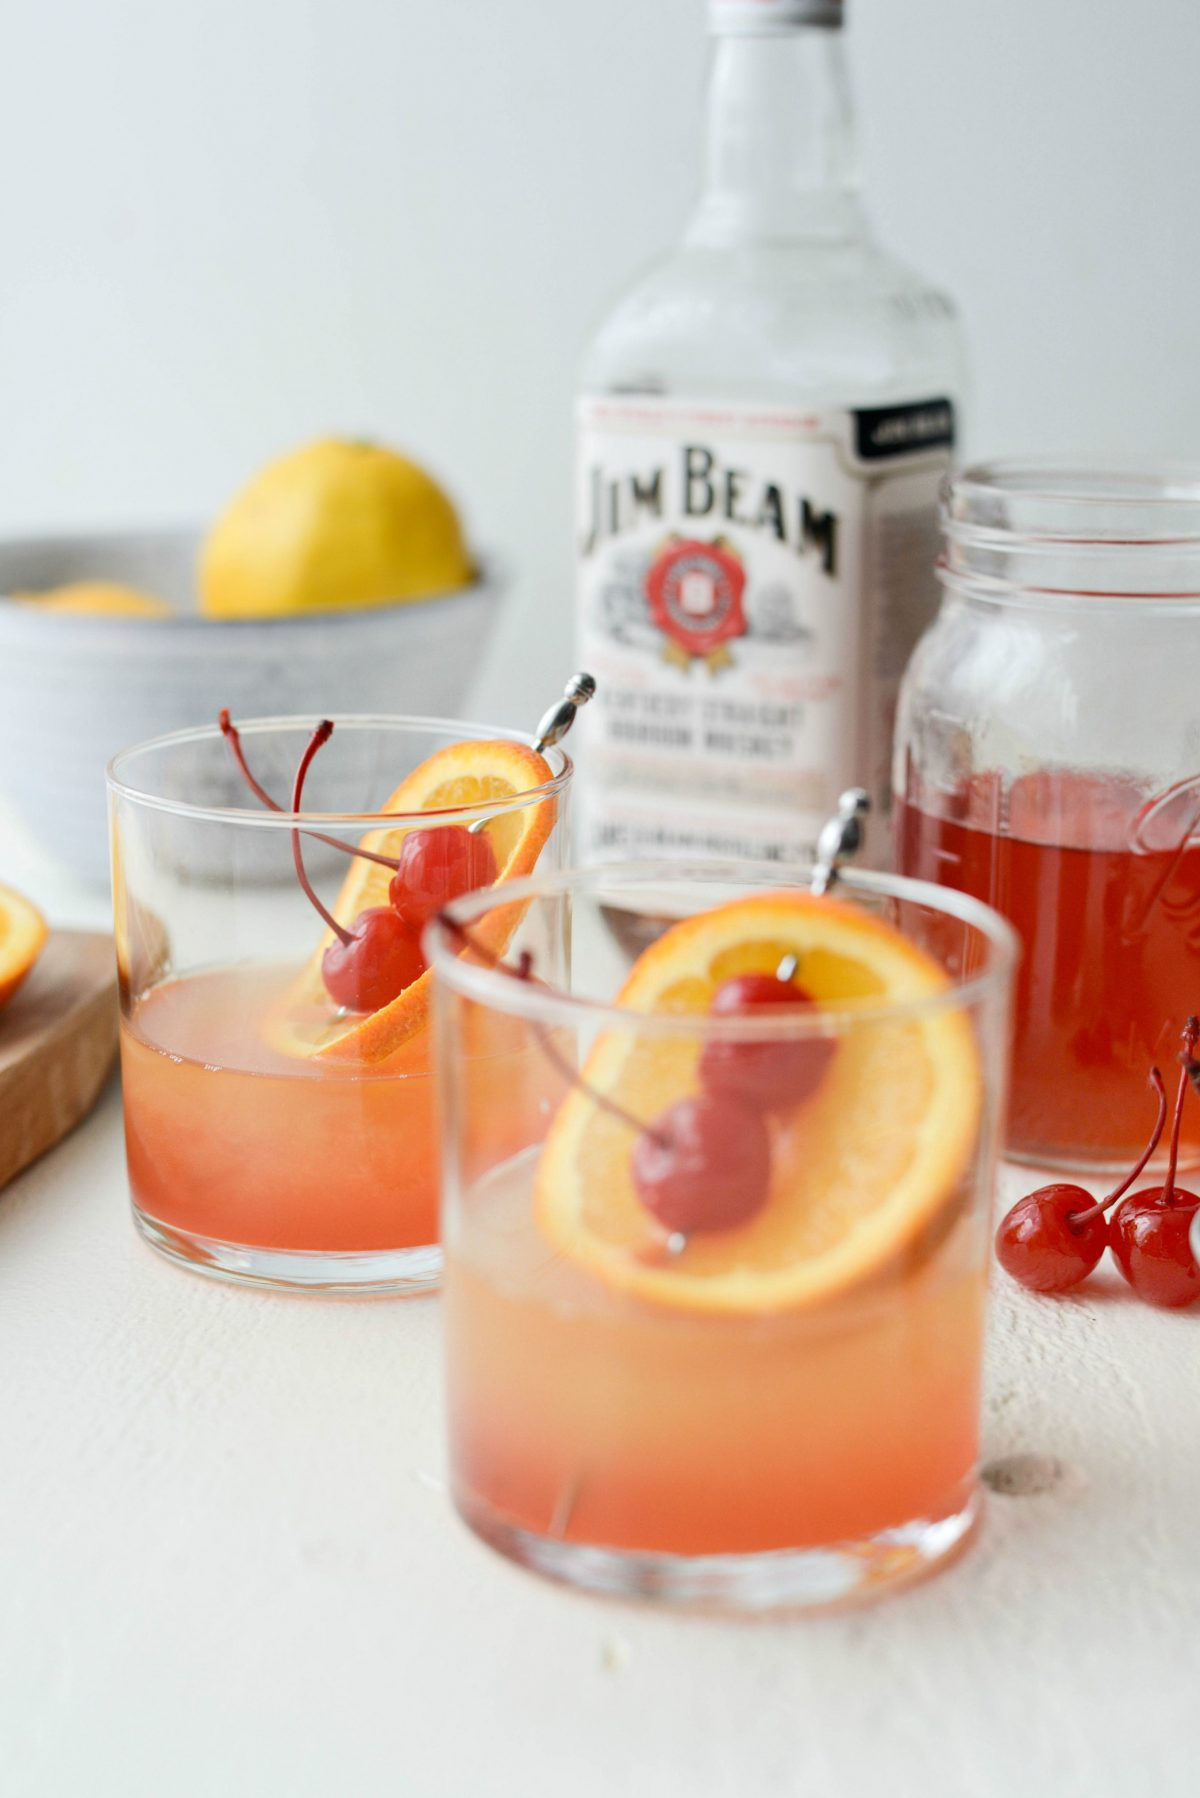 Whiskey Sour Sunrise l SimplyScratch.com #whiskey #lemon #cherry #adultbeverage #whiskeysour #recipe #drink #beverage